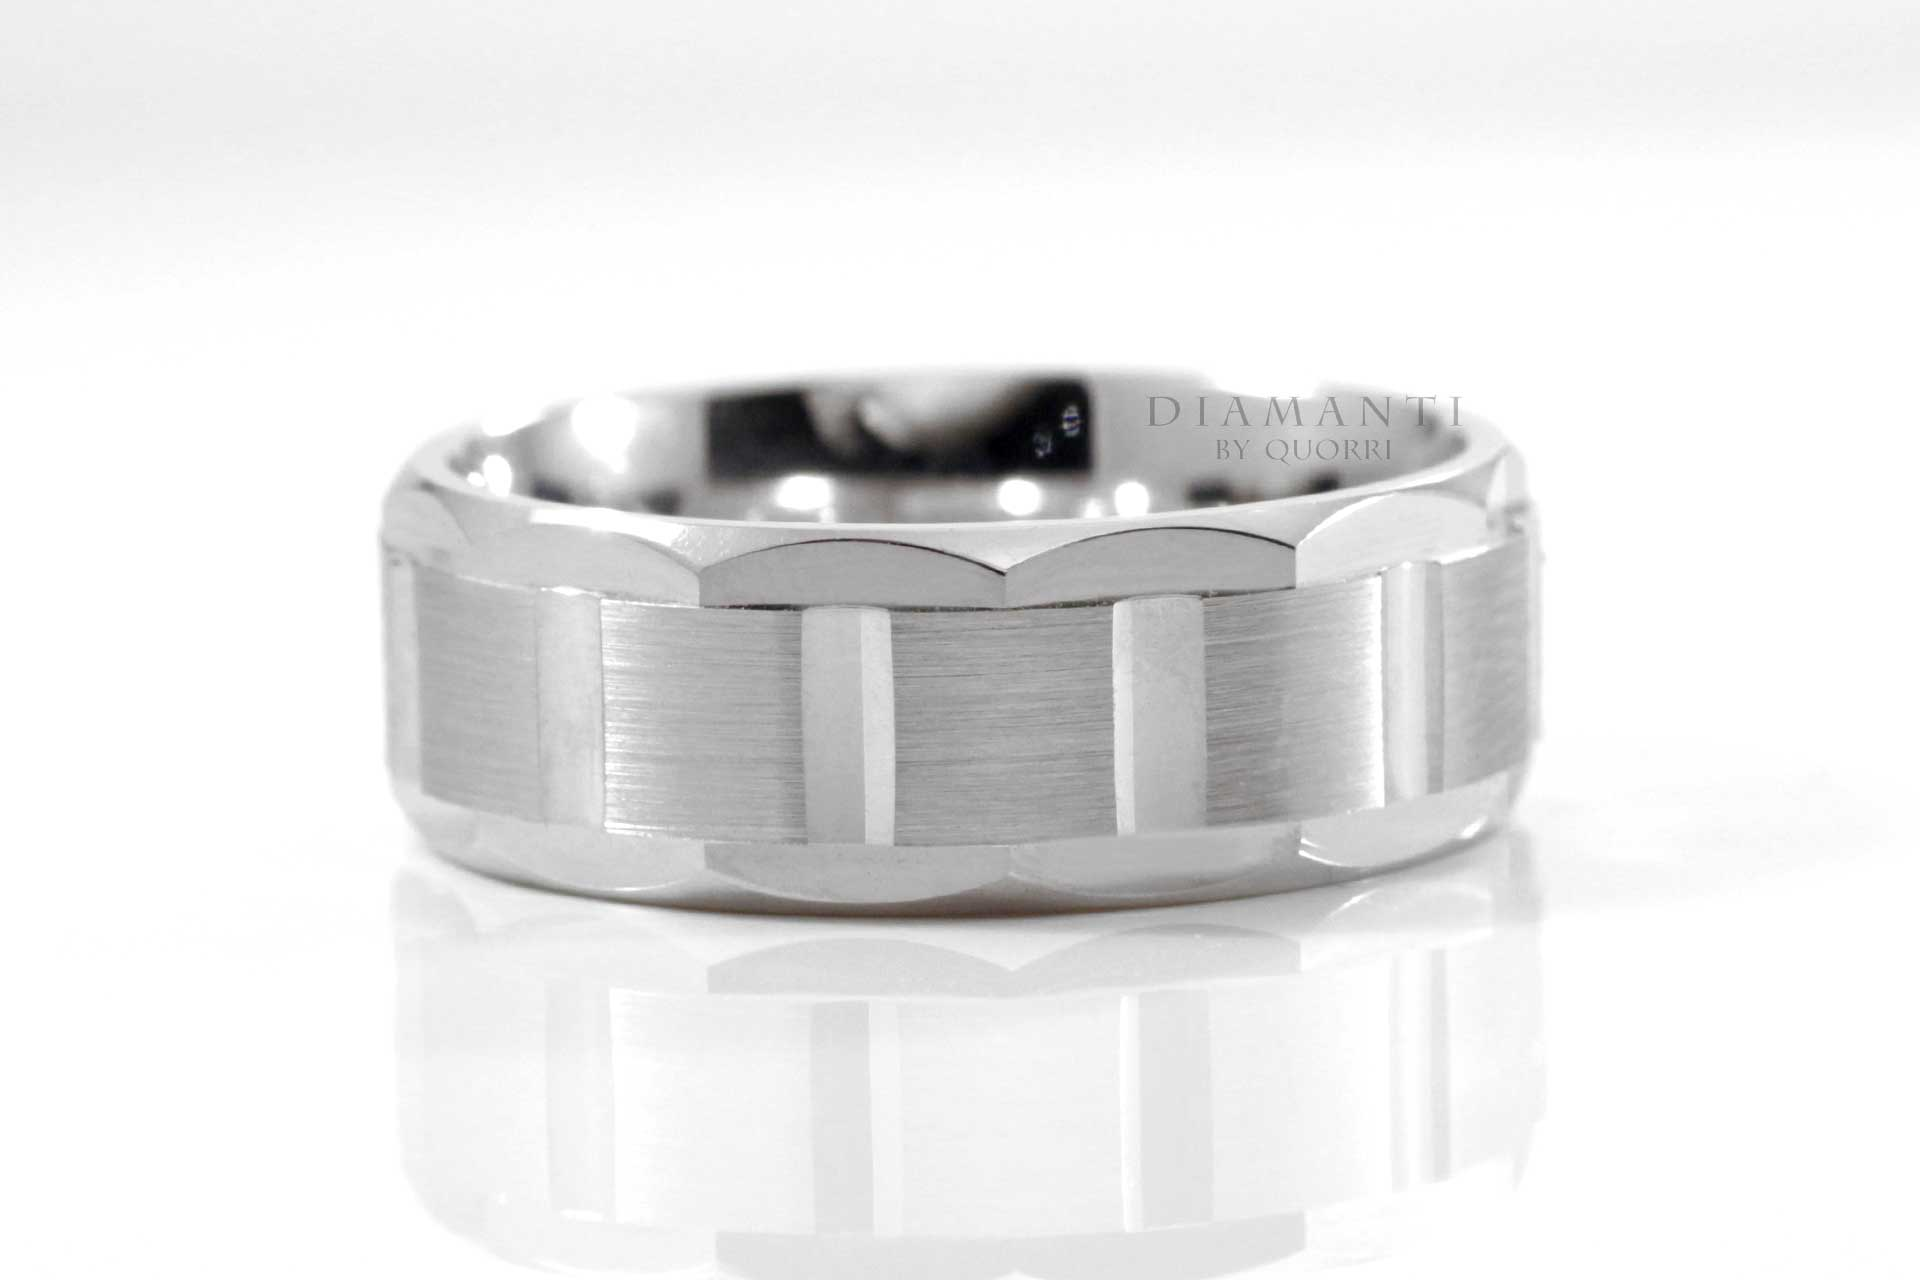 designer gold and platinum mens wedding bands by quorri canada